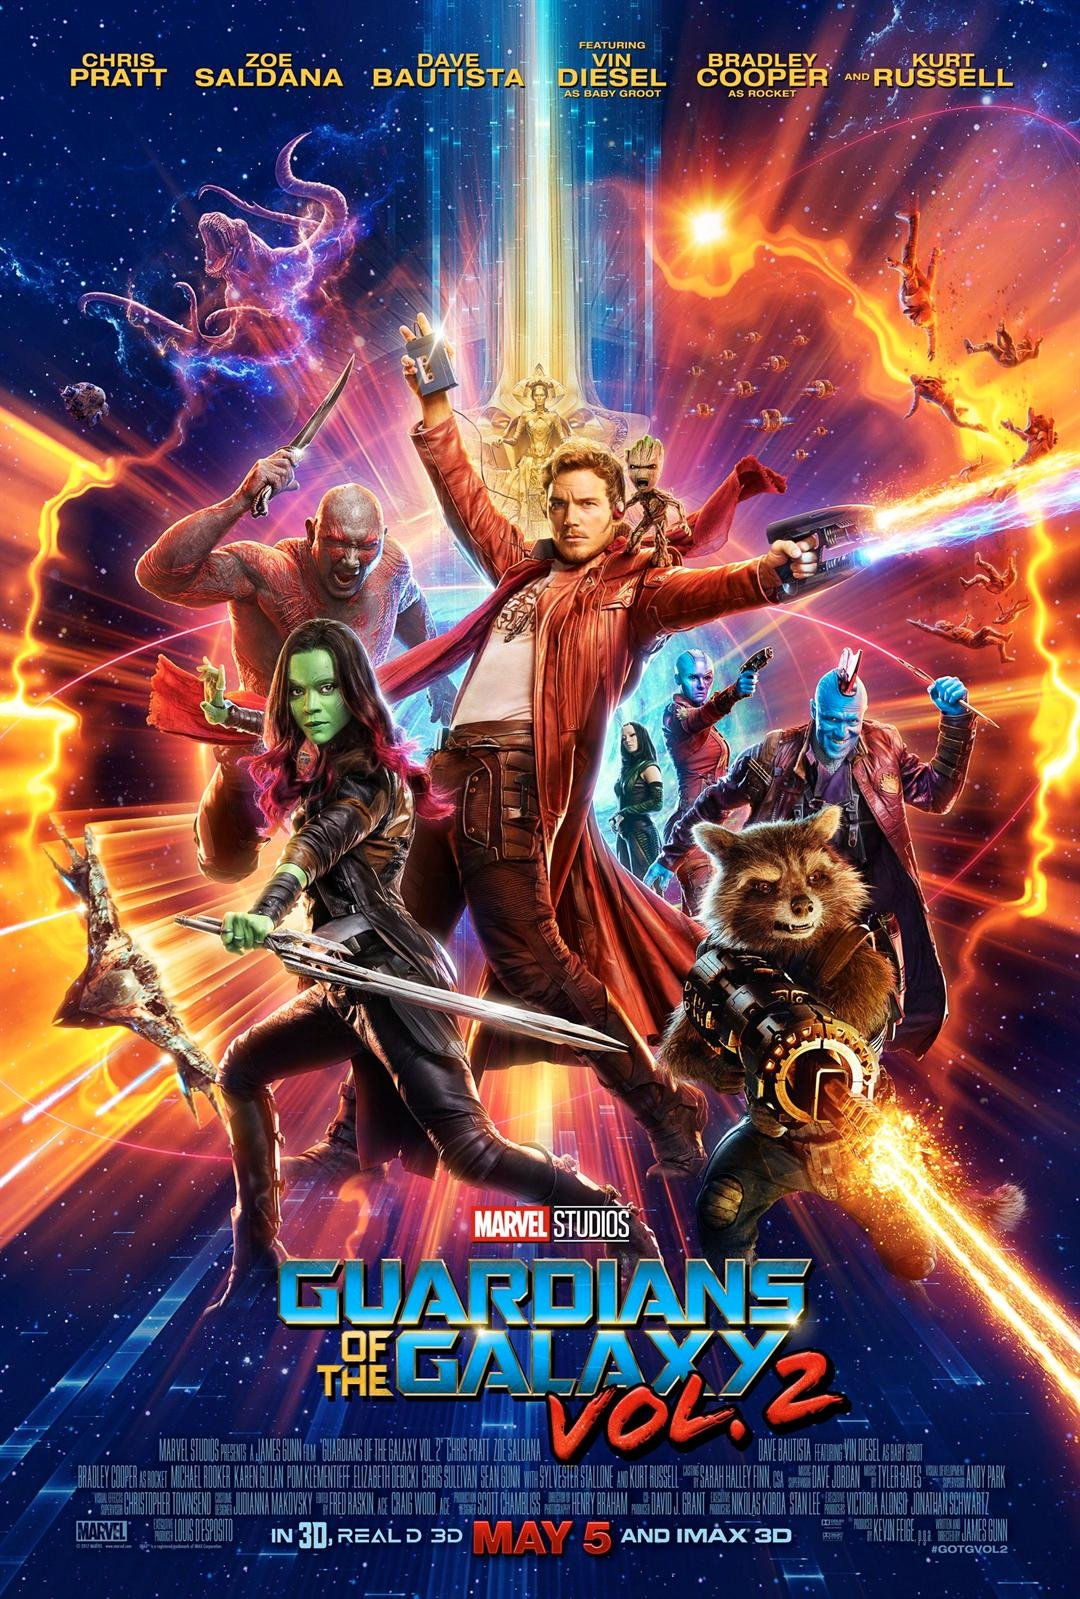 KCTV5 is giving away movie passes to see an advanced screening of the movie Guardians of the Galaxy Vol. 2. (Allied Integrated Marketing)